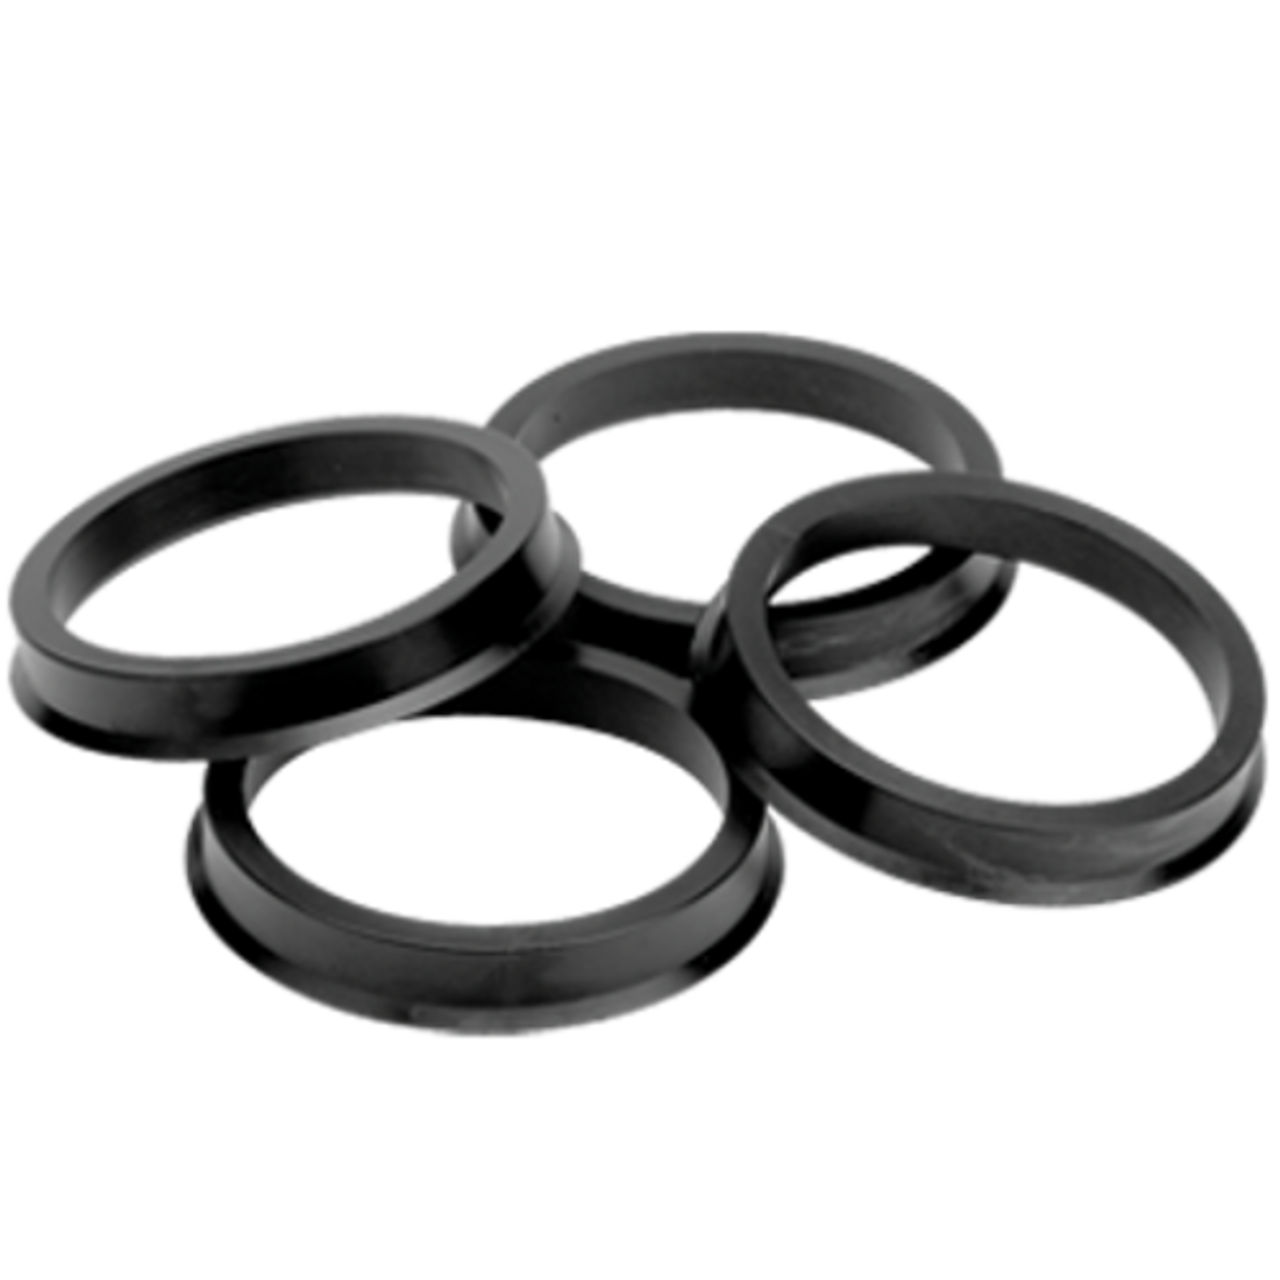 AME73-5615, HUB CENTRIC RINGS